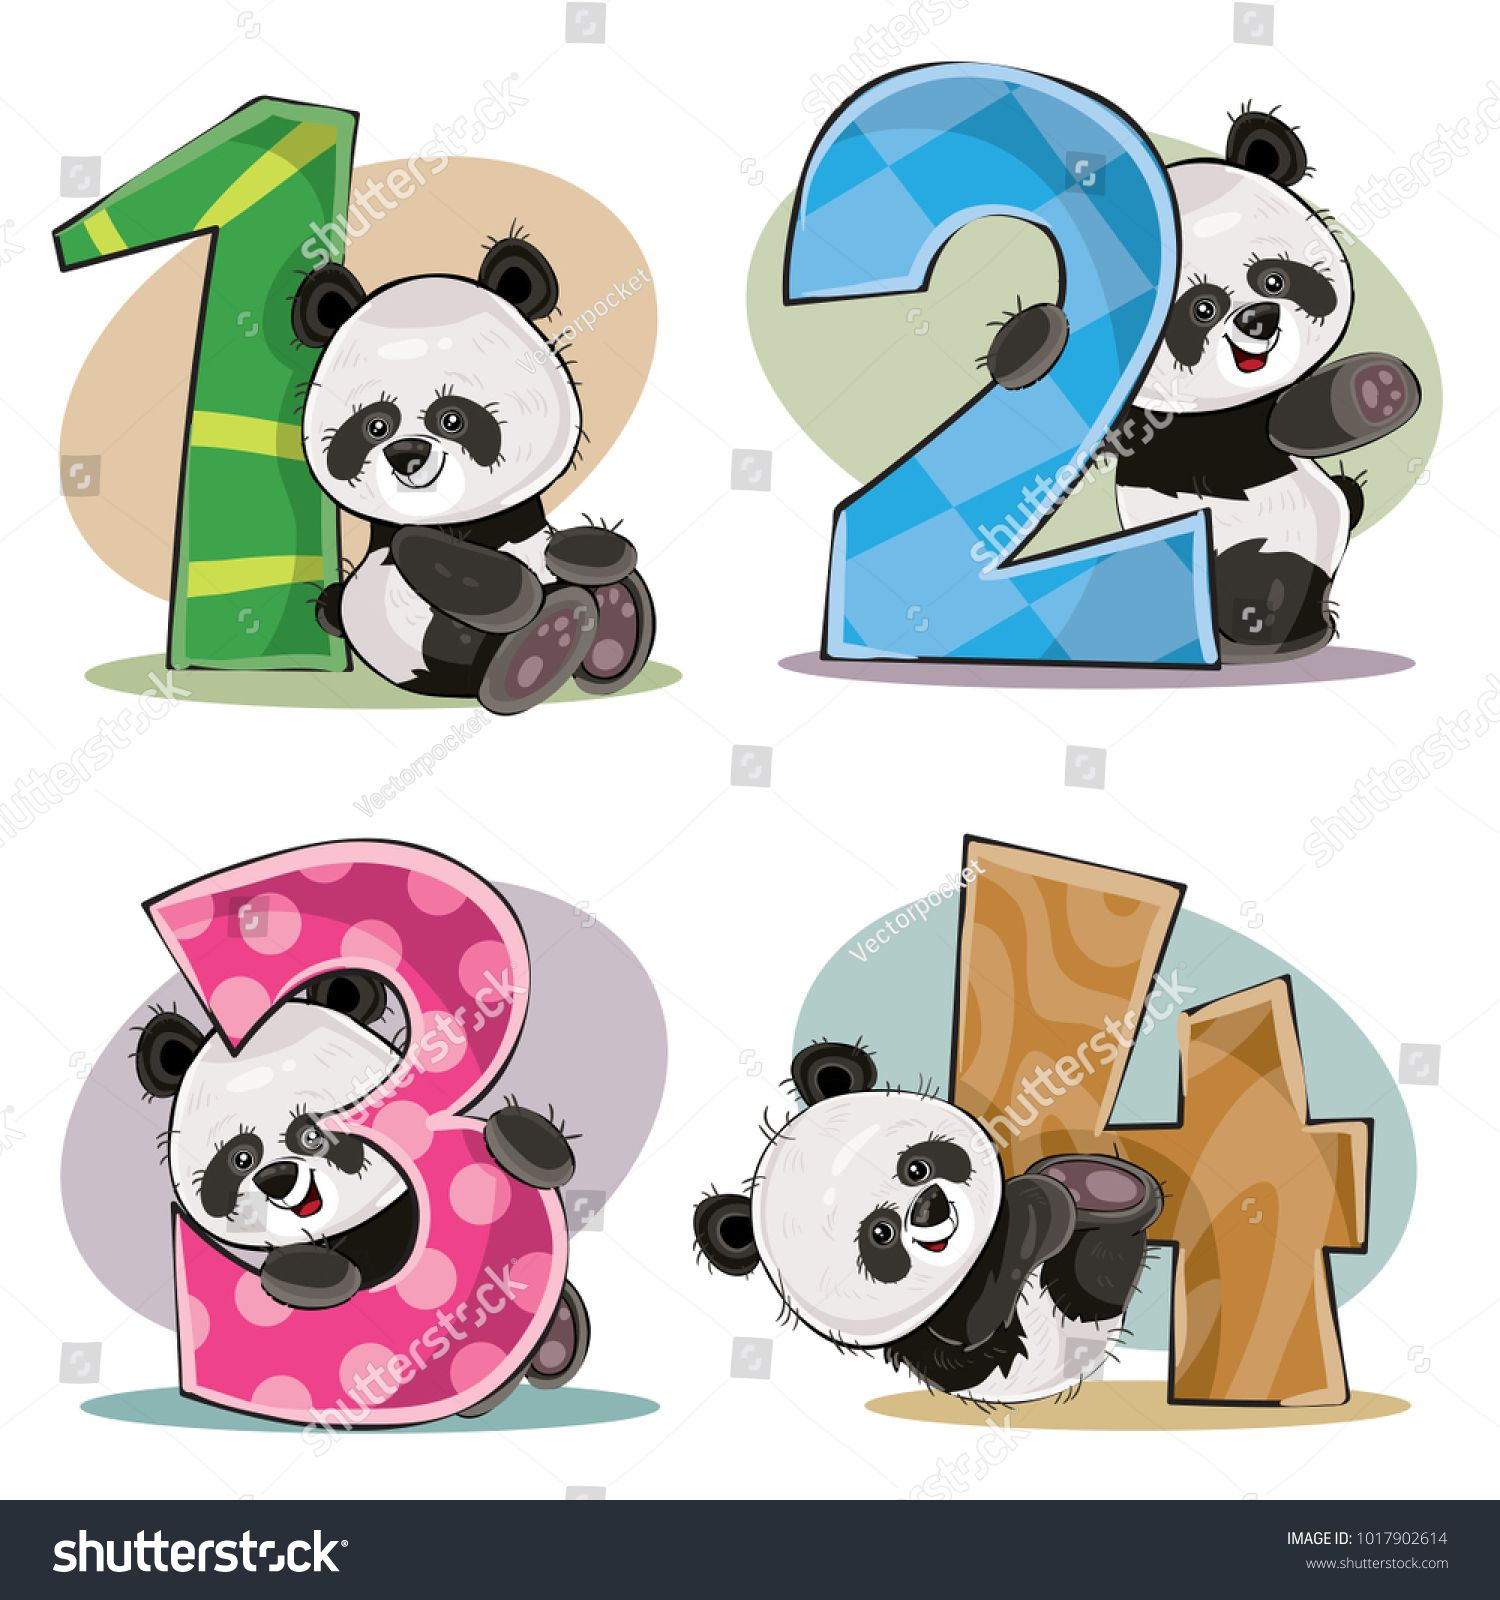 fb27de036e Set of cute baby panda bears with numbers vector cartoon illustration.  Clipart for greeting card